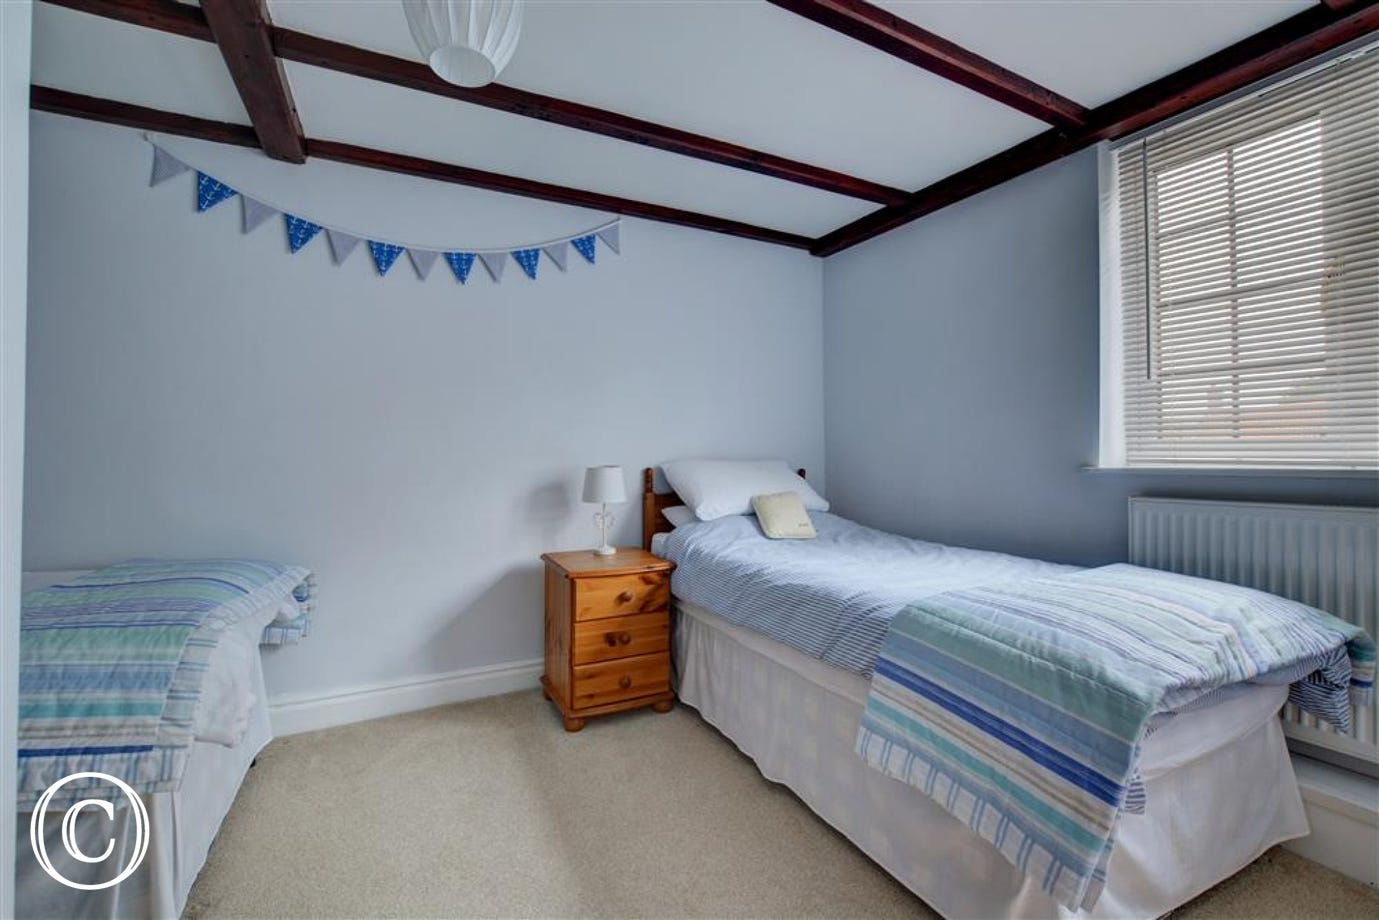 Bedroom three is a nautical themed room with twin beds